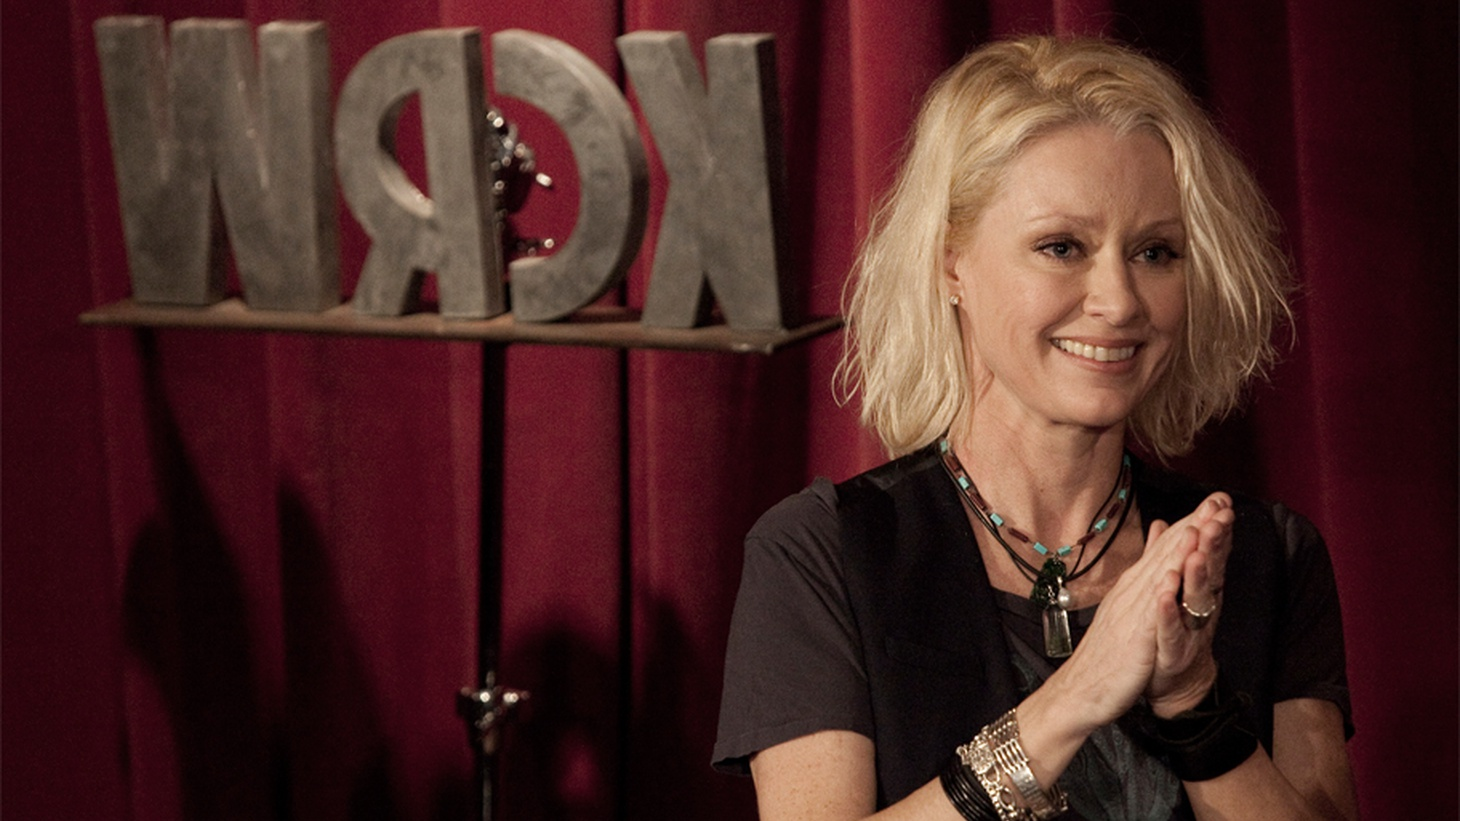 Grammy Award-winning singer Shelby Lynne performed a solo acoustic set in the intimate setting of KCRW's Apogee Sessions in front of a live audience early this year.